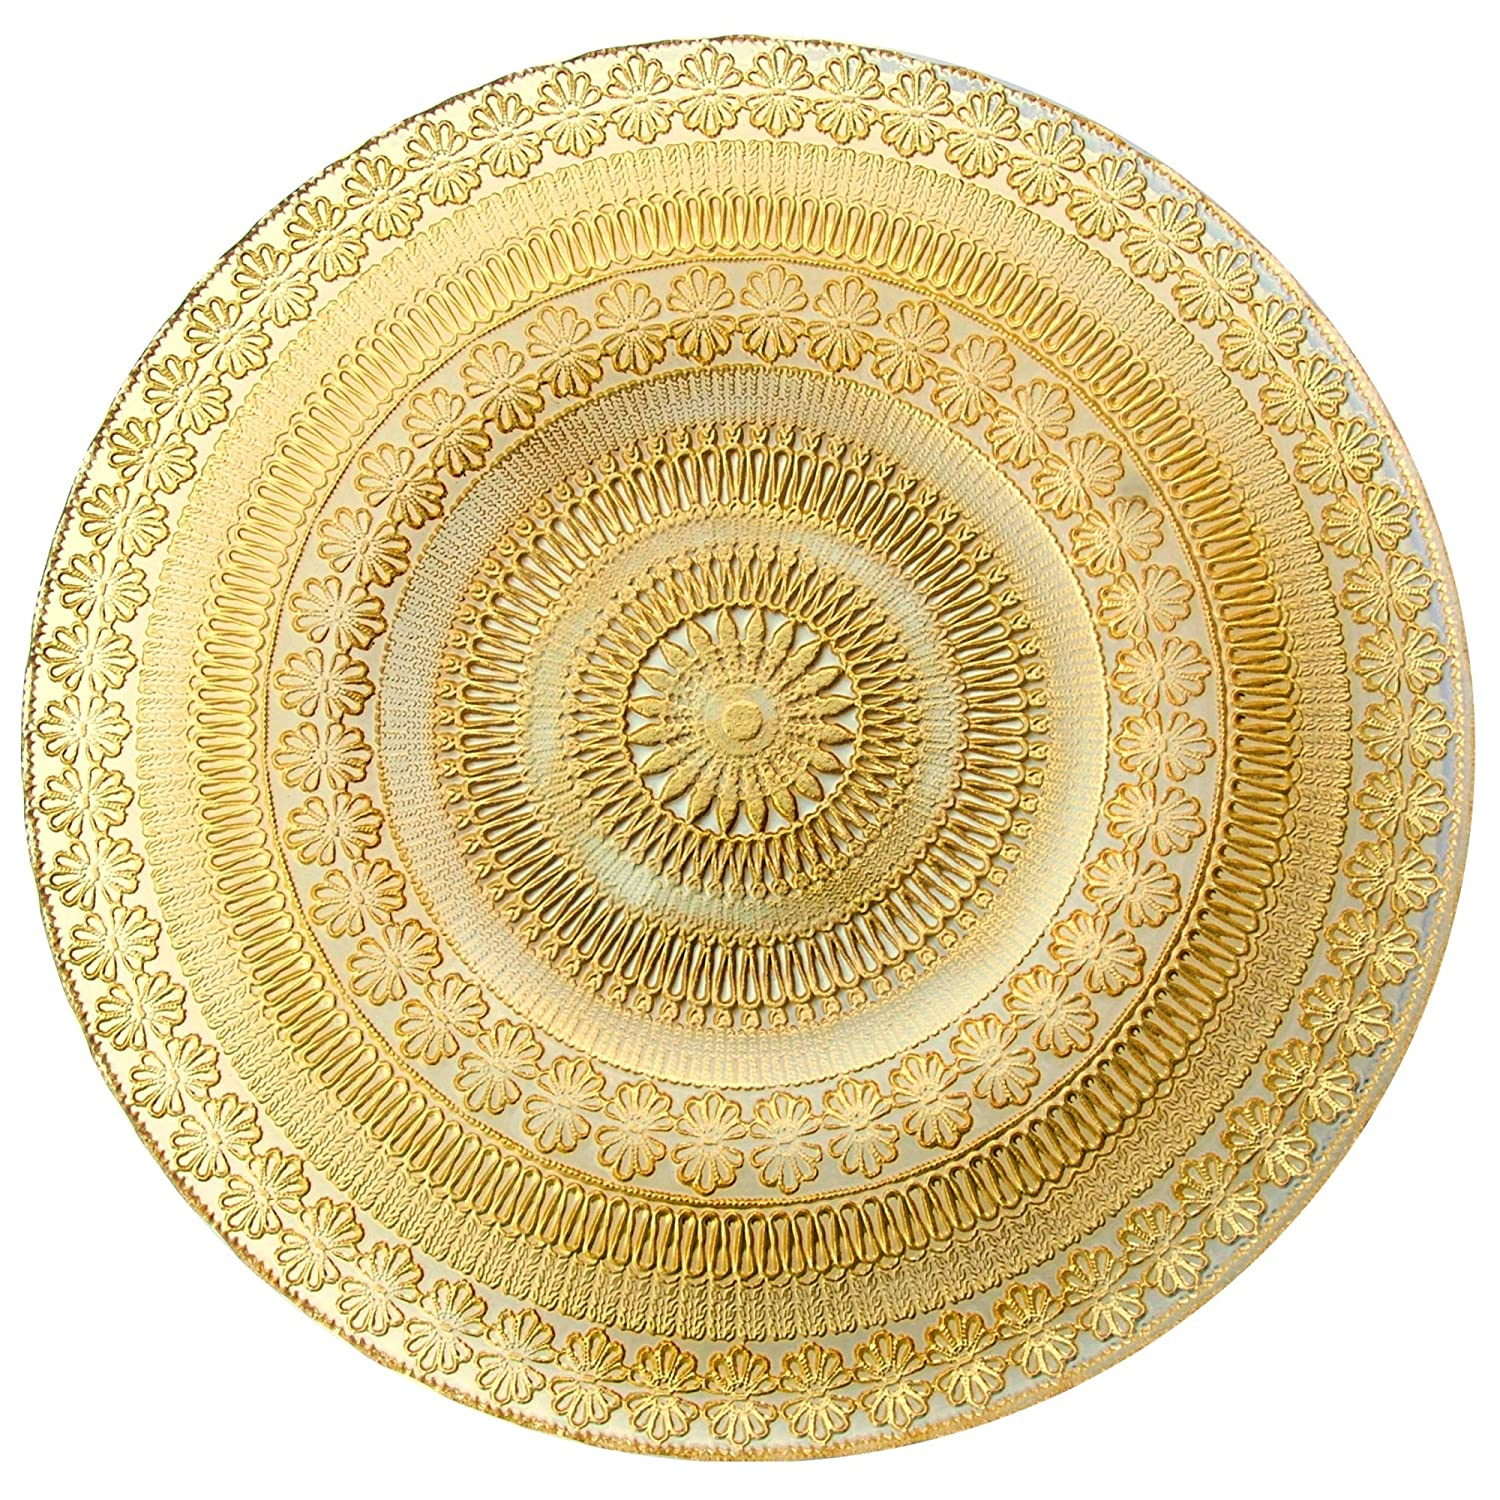 Red Pomegranate 4357-1 Set//2 Florence 13 Gold Charger Plates,